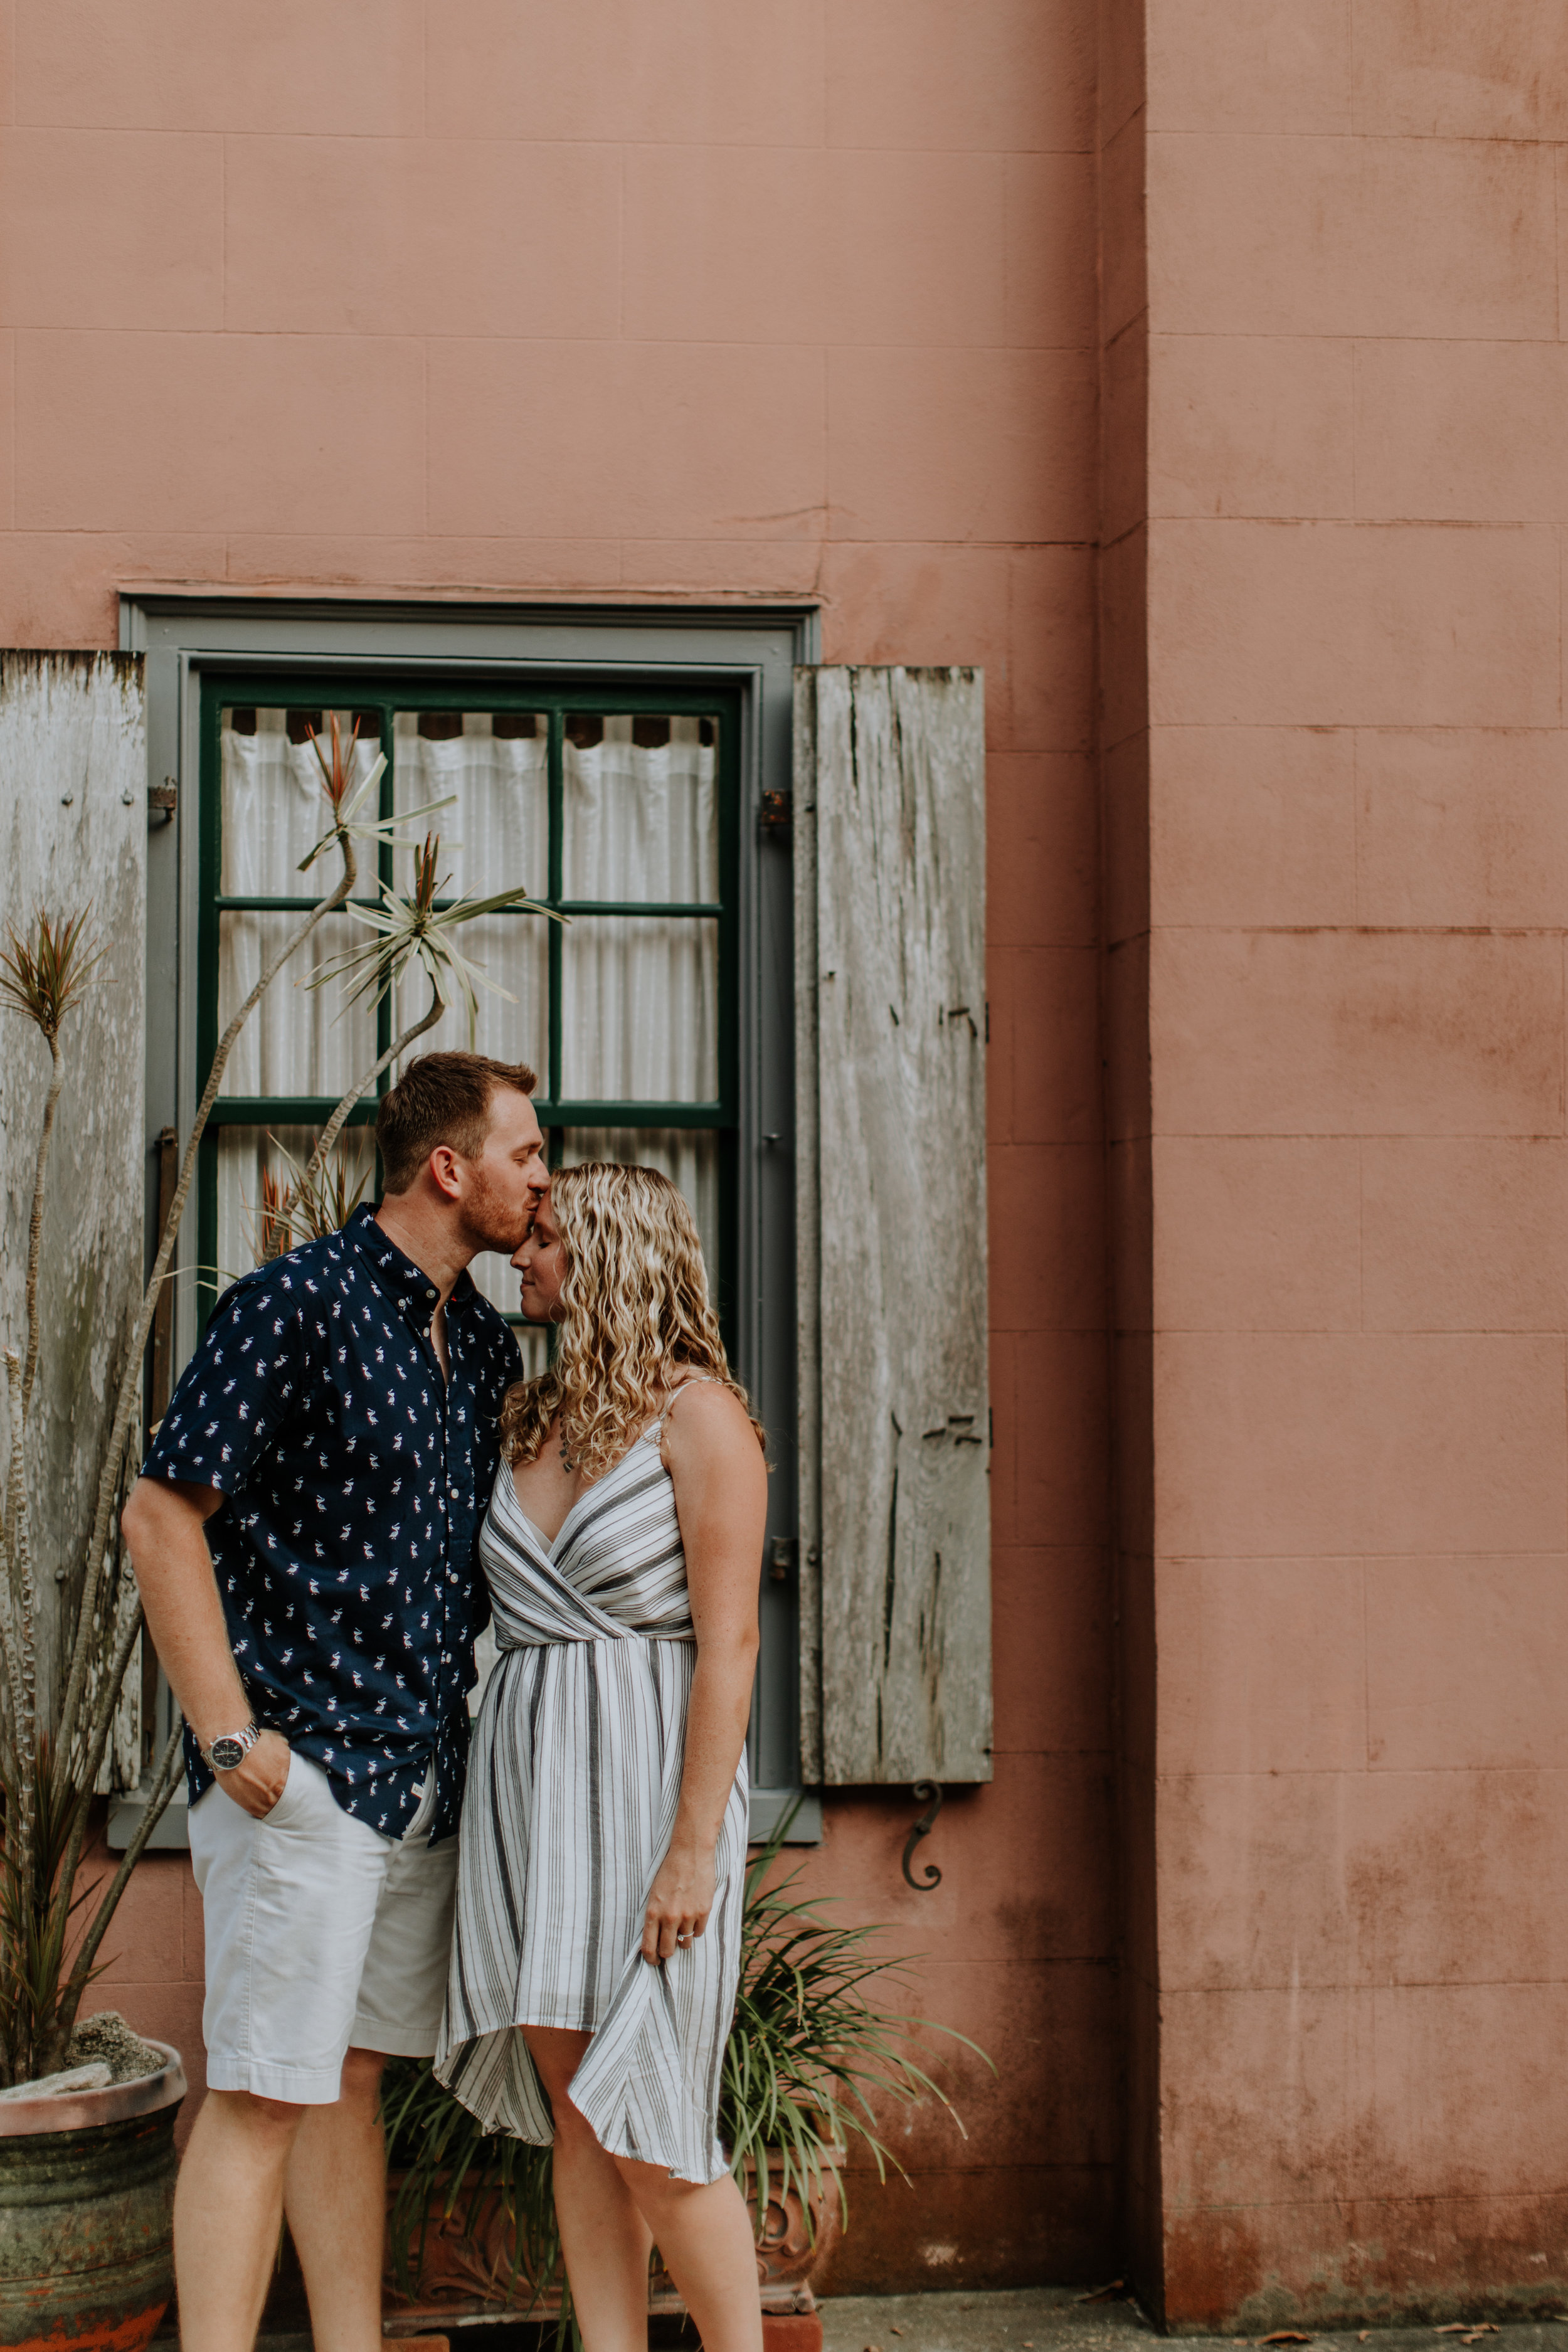 hillary&jimie_engagement (86 of 139).jpg